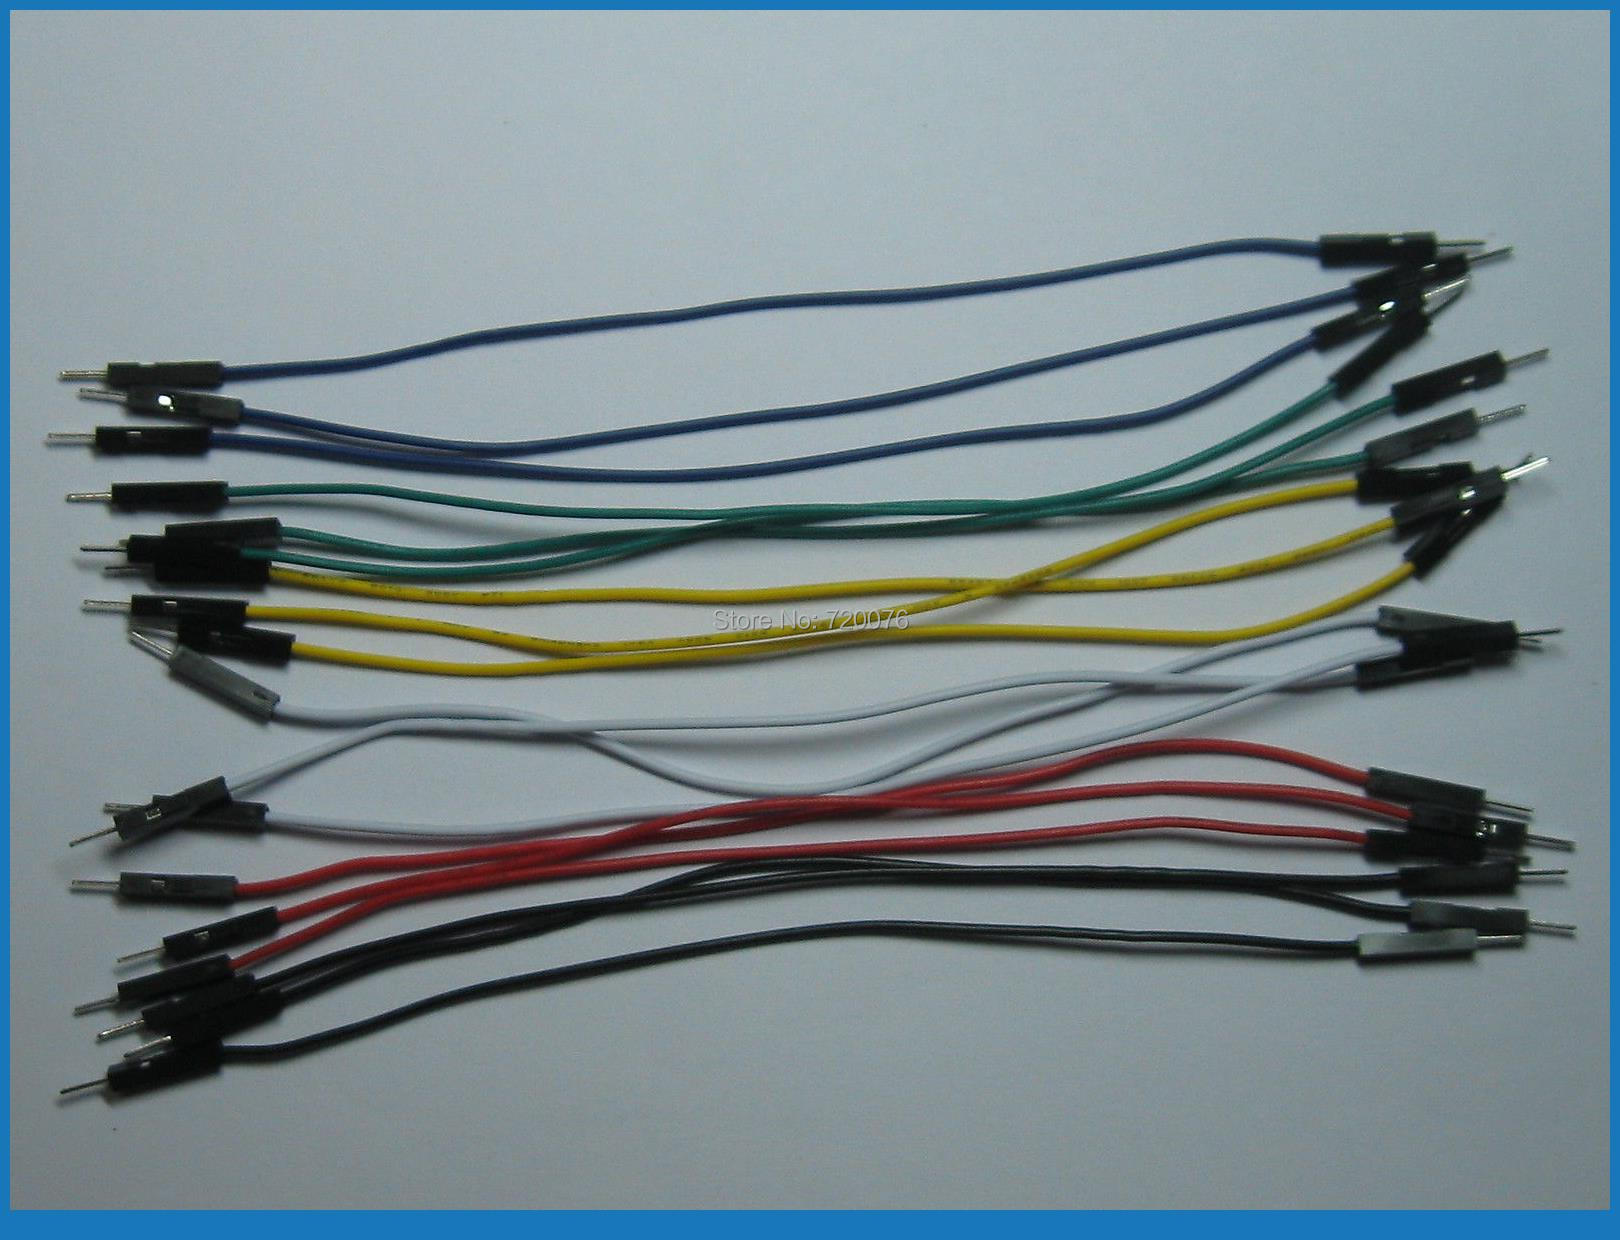 504 pcs Jumper wire Male to Male 1 Pin Pitch 2.54mm 6 colors 15cm(6)504 pcs Jumper wire Male to Male 1 Pin Pitch 2.54mm 6 colors 15cm(6)